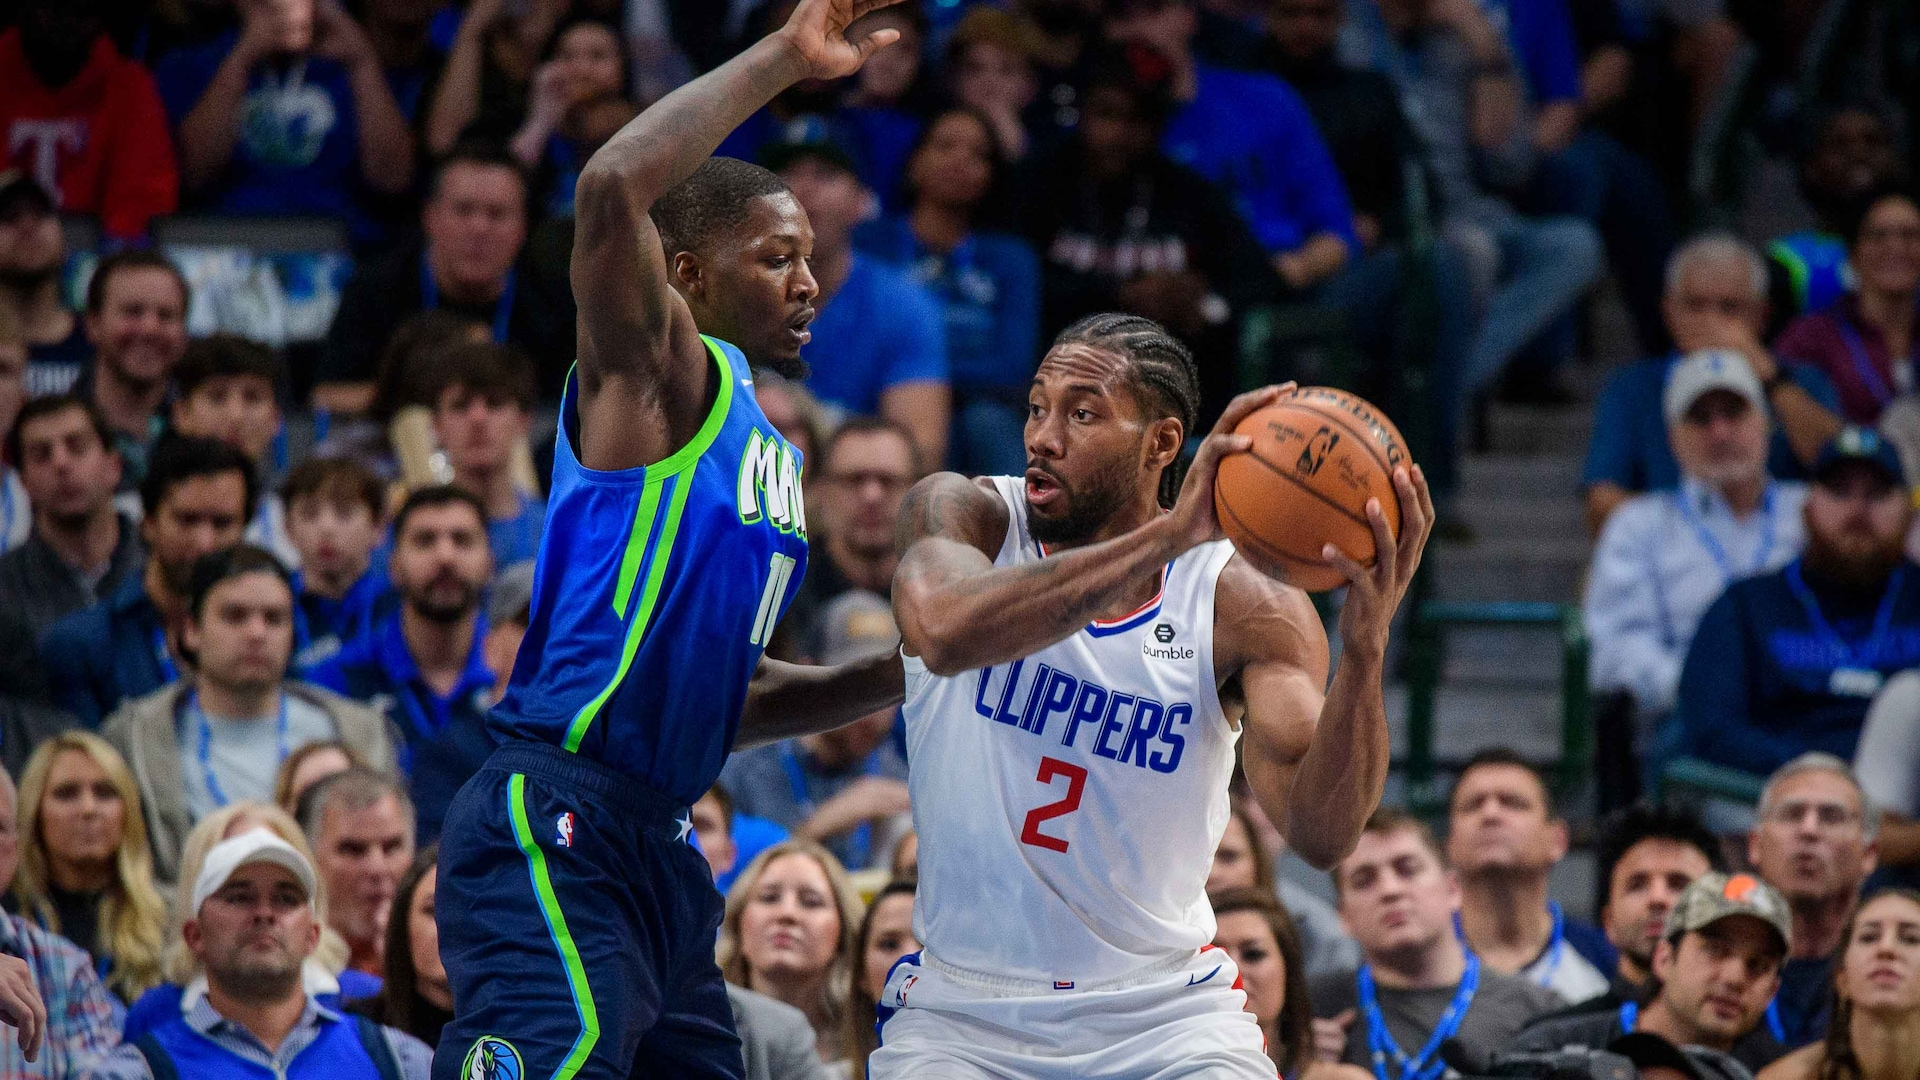 Viewer S Guide Clippers Vs Mavericks On Nba Tv Nba Com